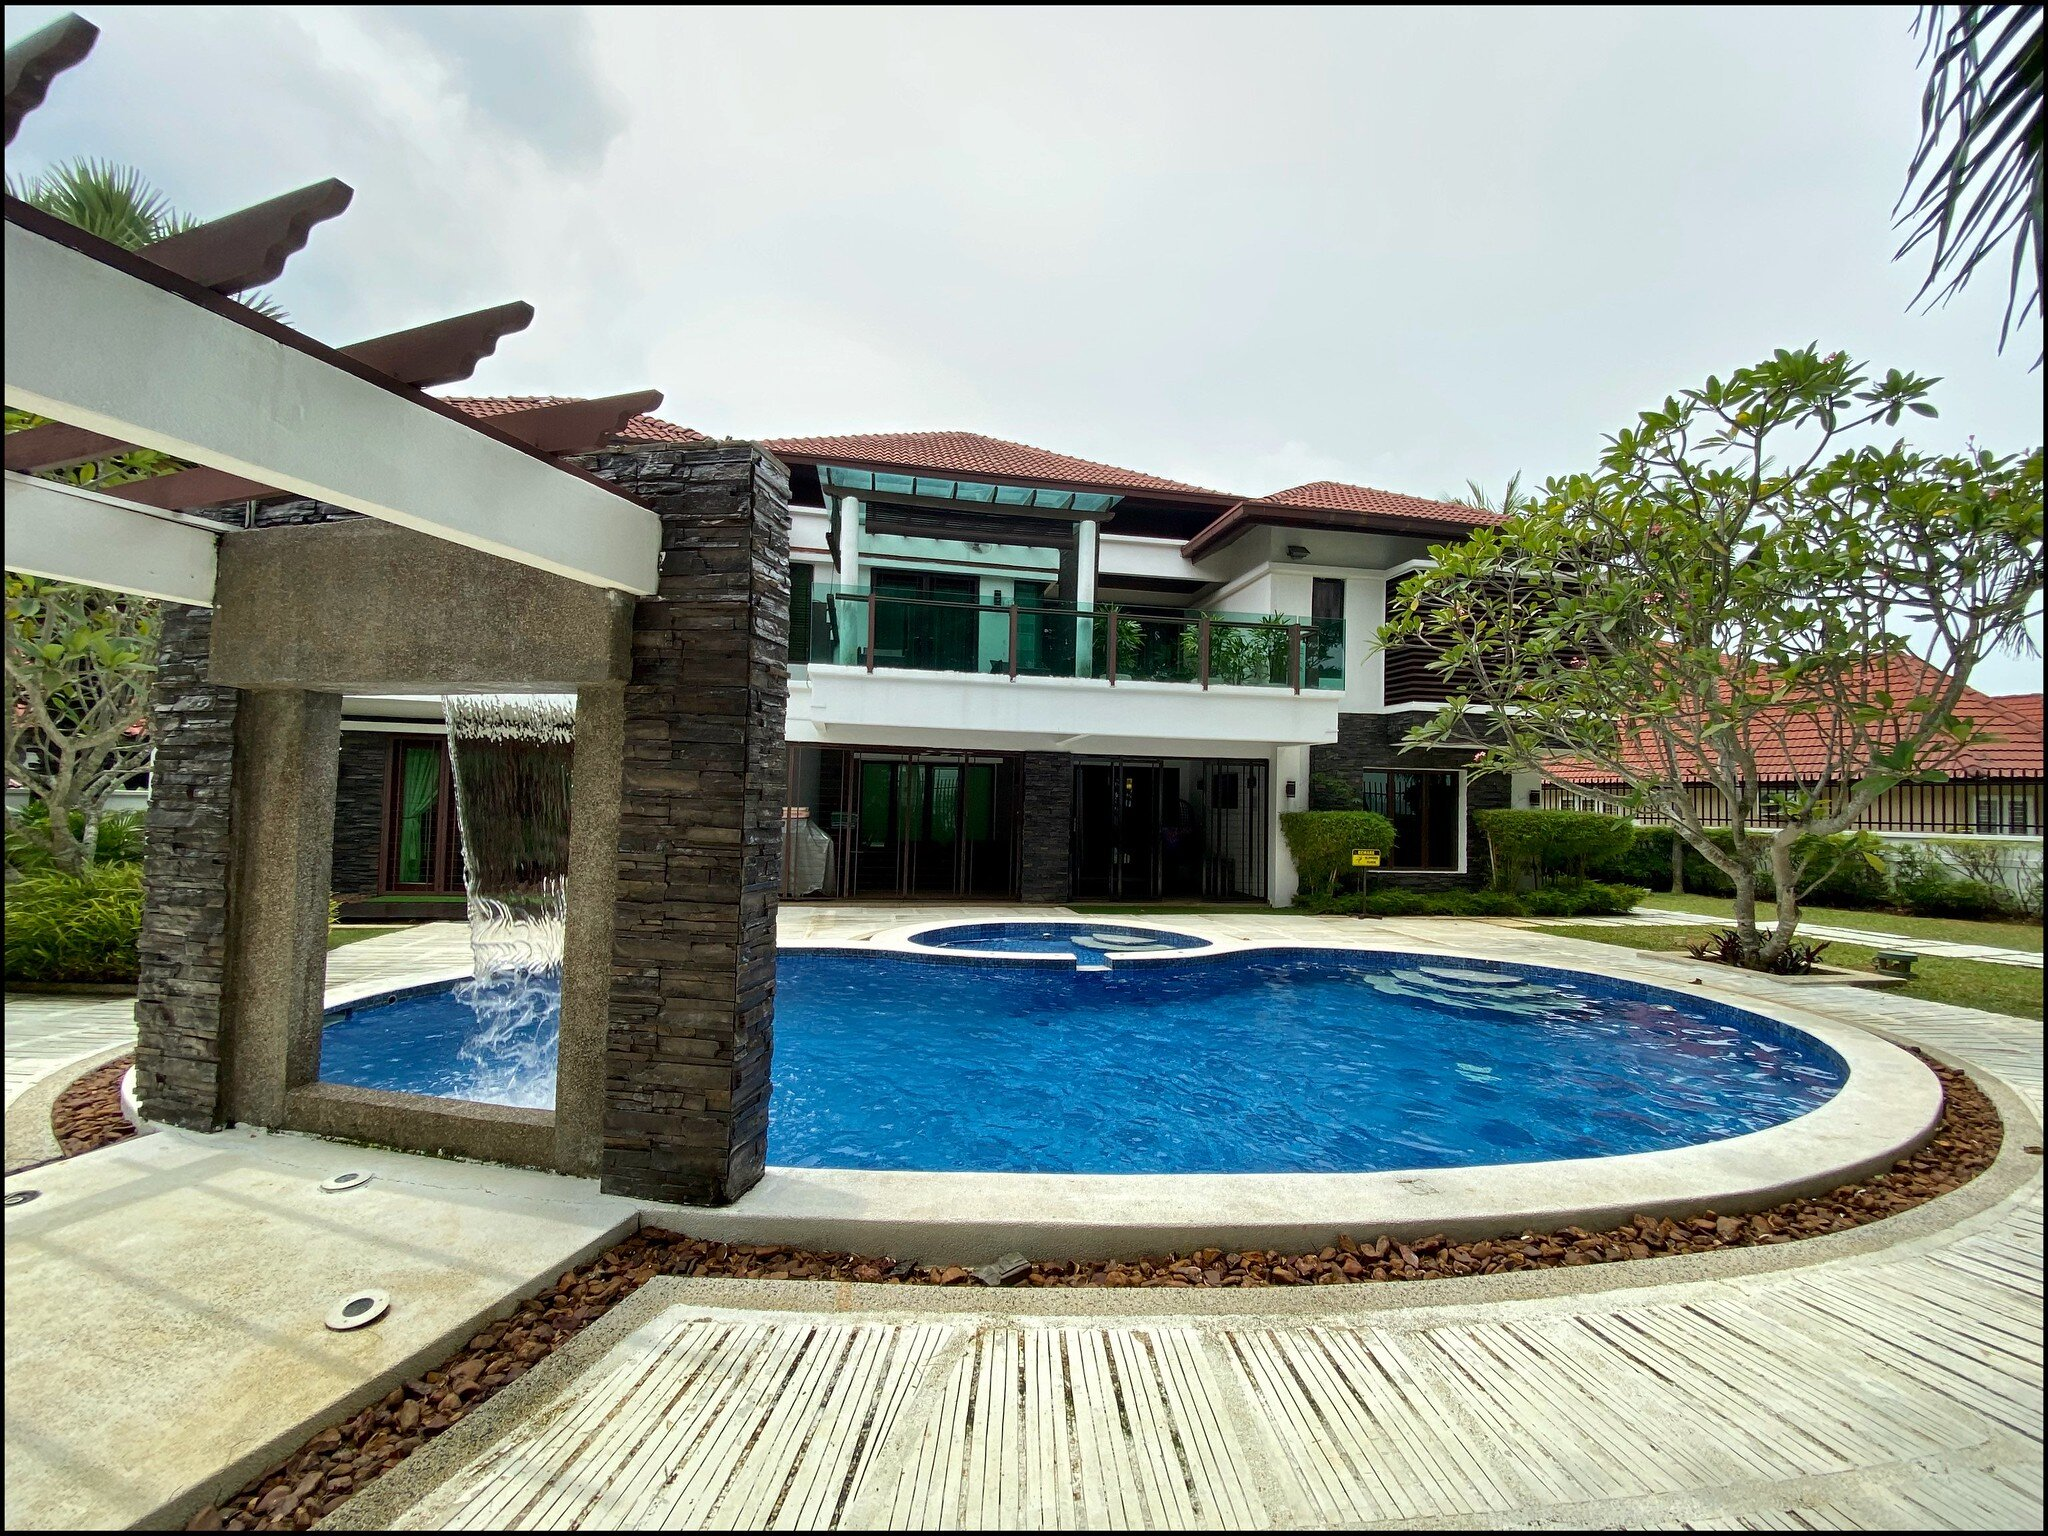 Overlooking the villa from the beach